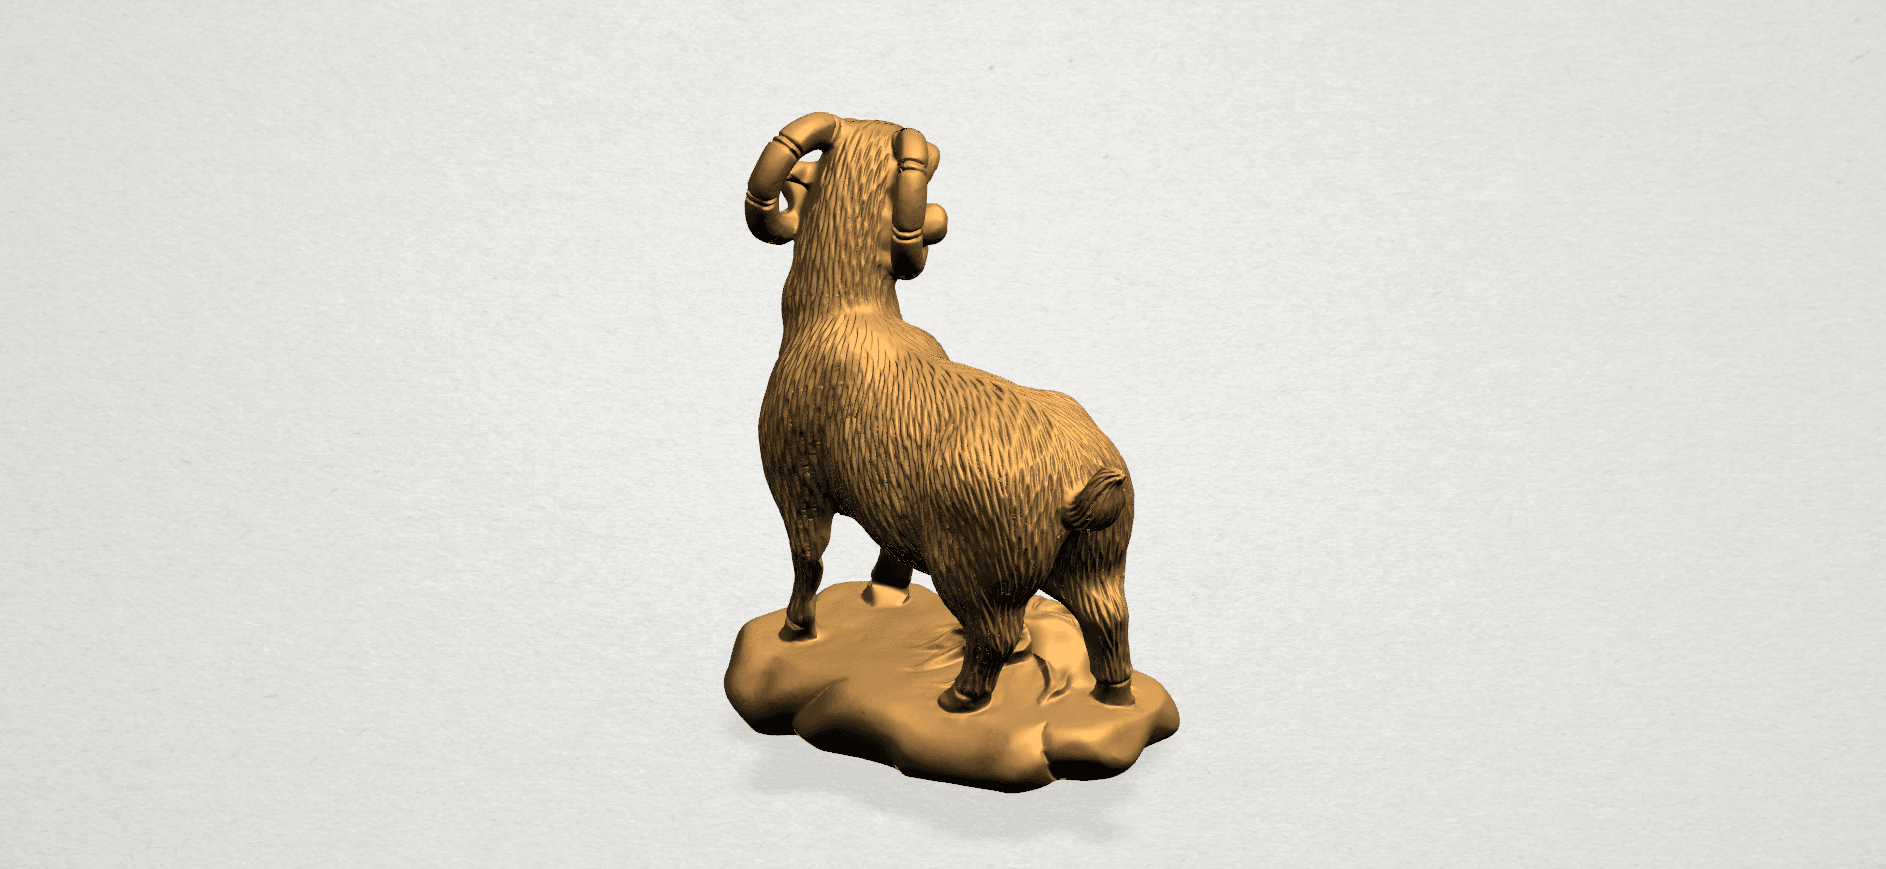 Chinese Horoscope08-A04.png Download free STL file Chinese Horoscope 08 Goat • Model to 3D print, GeorgesNikkei